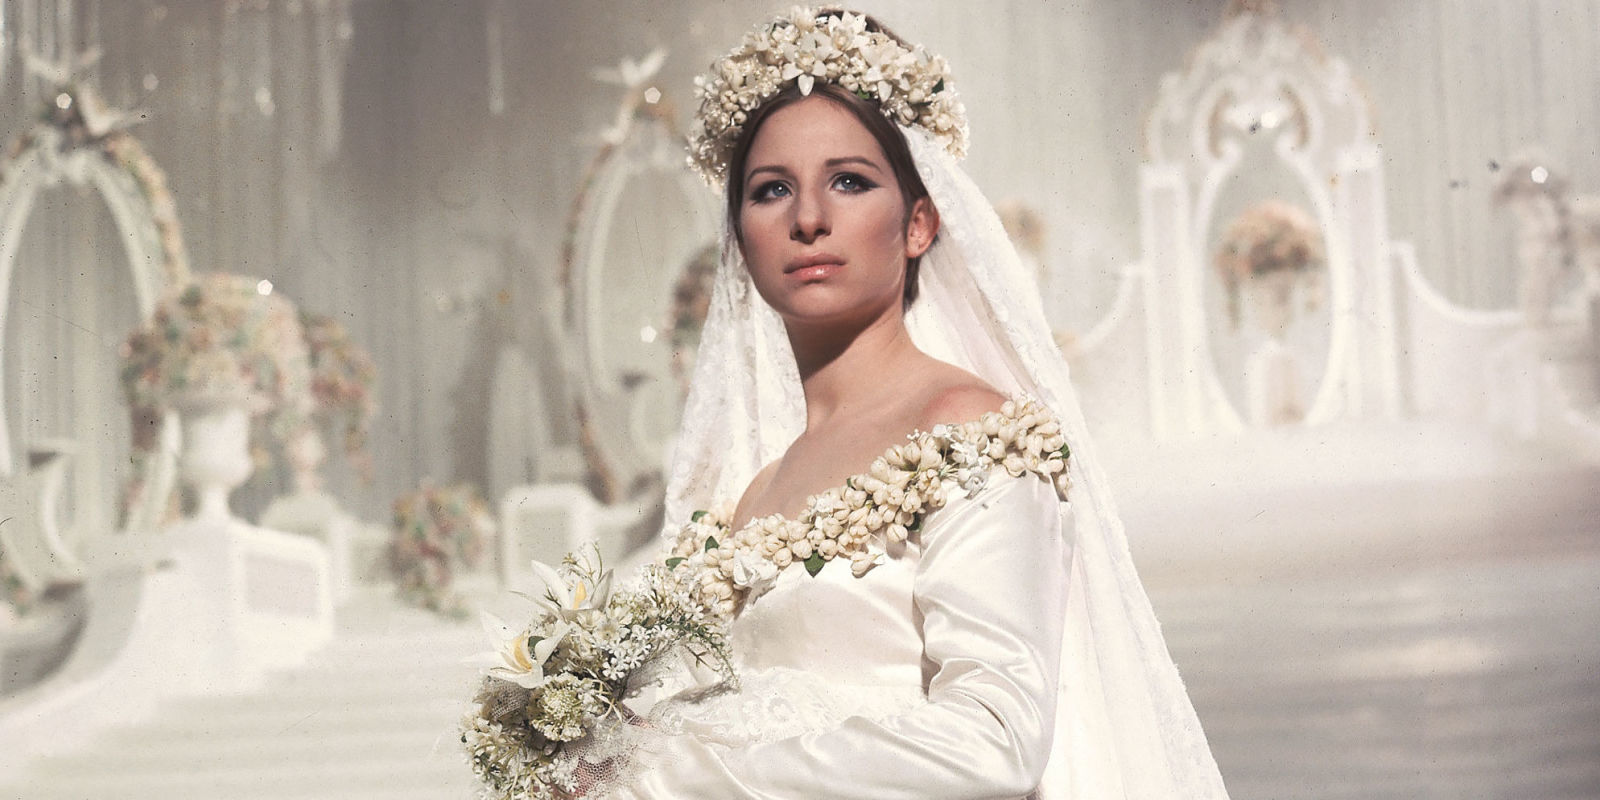 Wedding Gowns Pic: The 39 Most Iconic Movie Wedding Dresses Ever